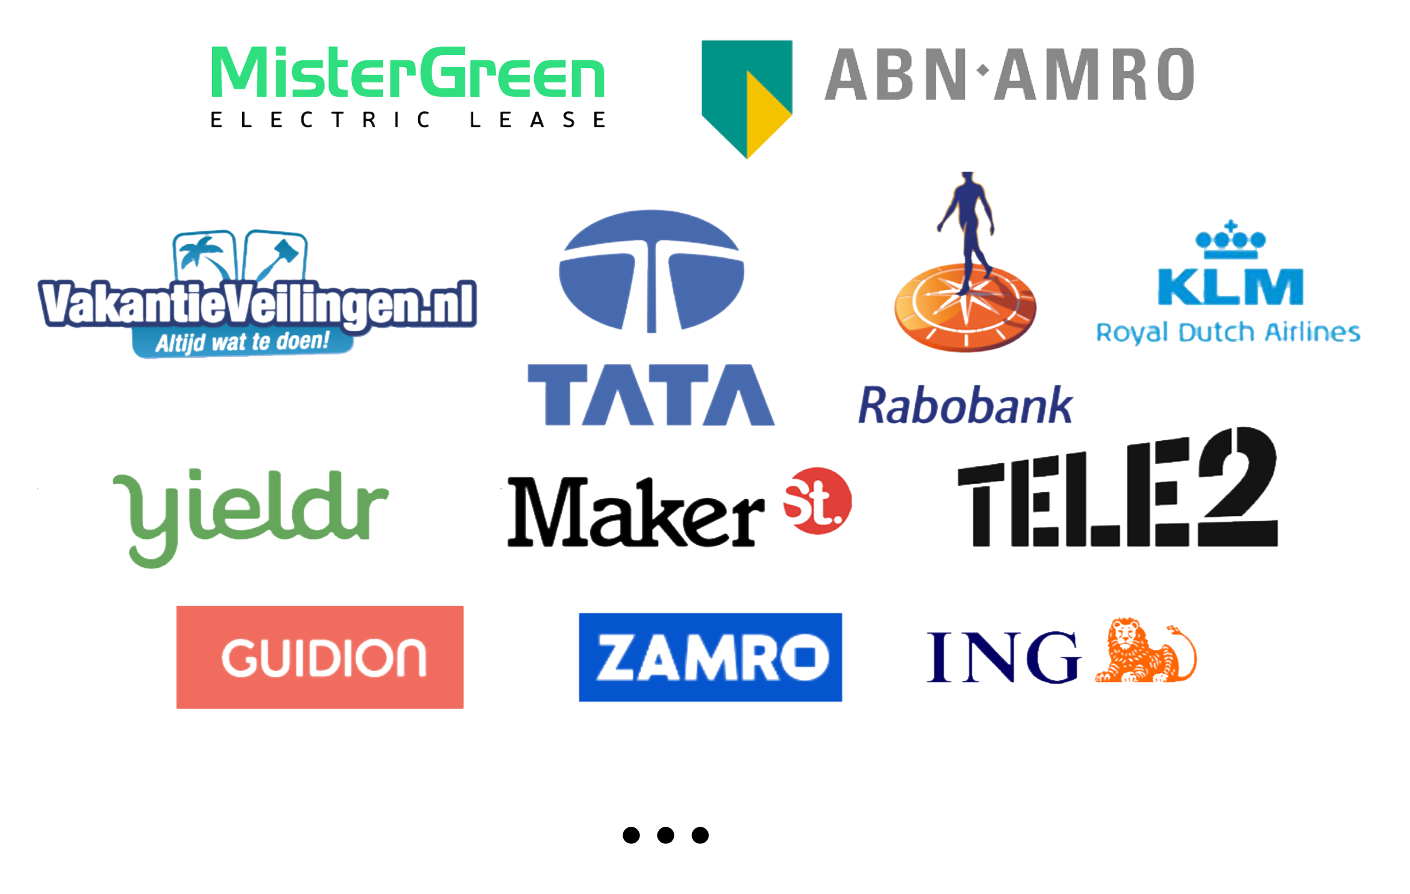 MisterGreen Direct, ABN AMRO, ING, VakantieVeilingen, Tata Consulting Services, Rabobank, KLM, Yieldr, Maker Street, Tele2, Guidion, Zamro